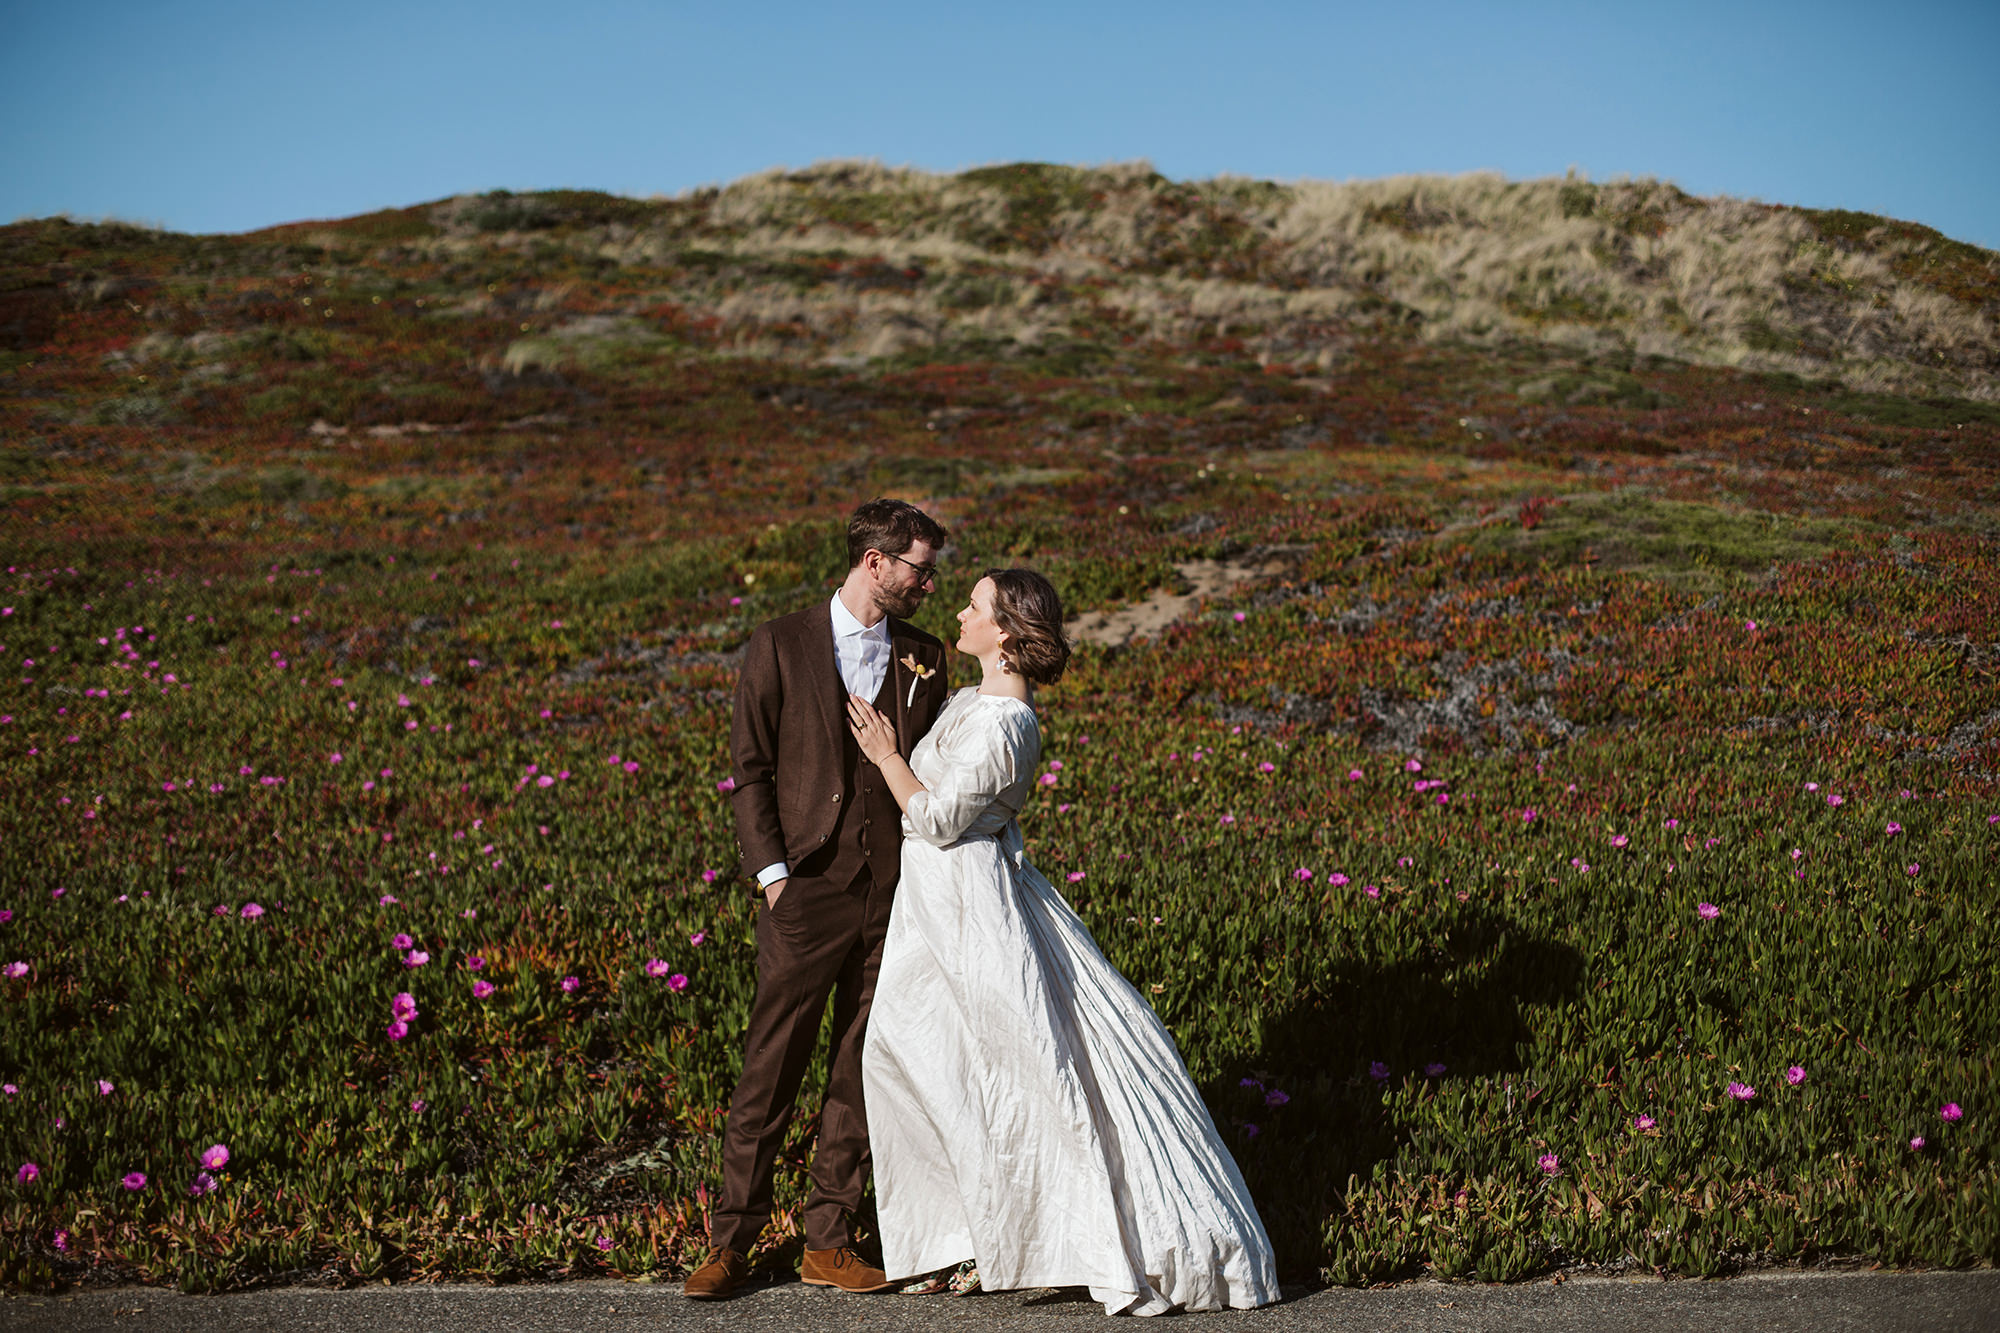 Bride looks into eyes of groom in front of field of succulents at sunset for Point Reyes Elopement.